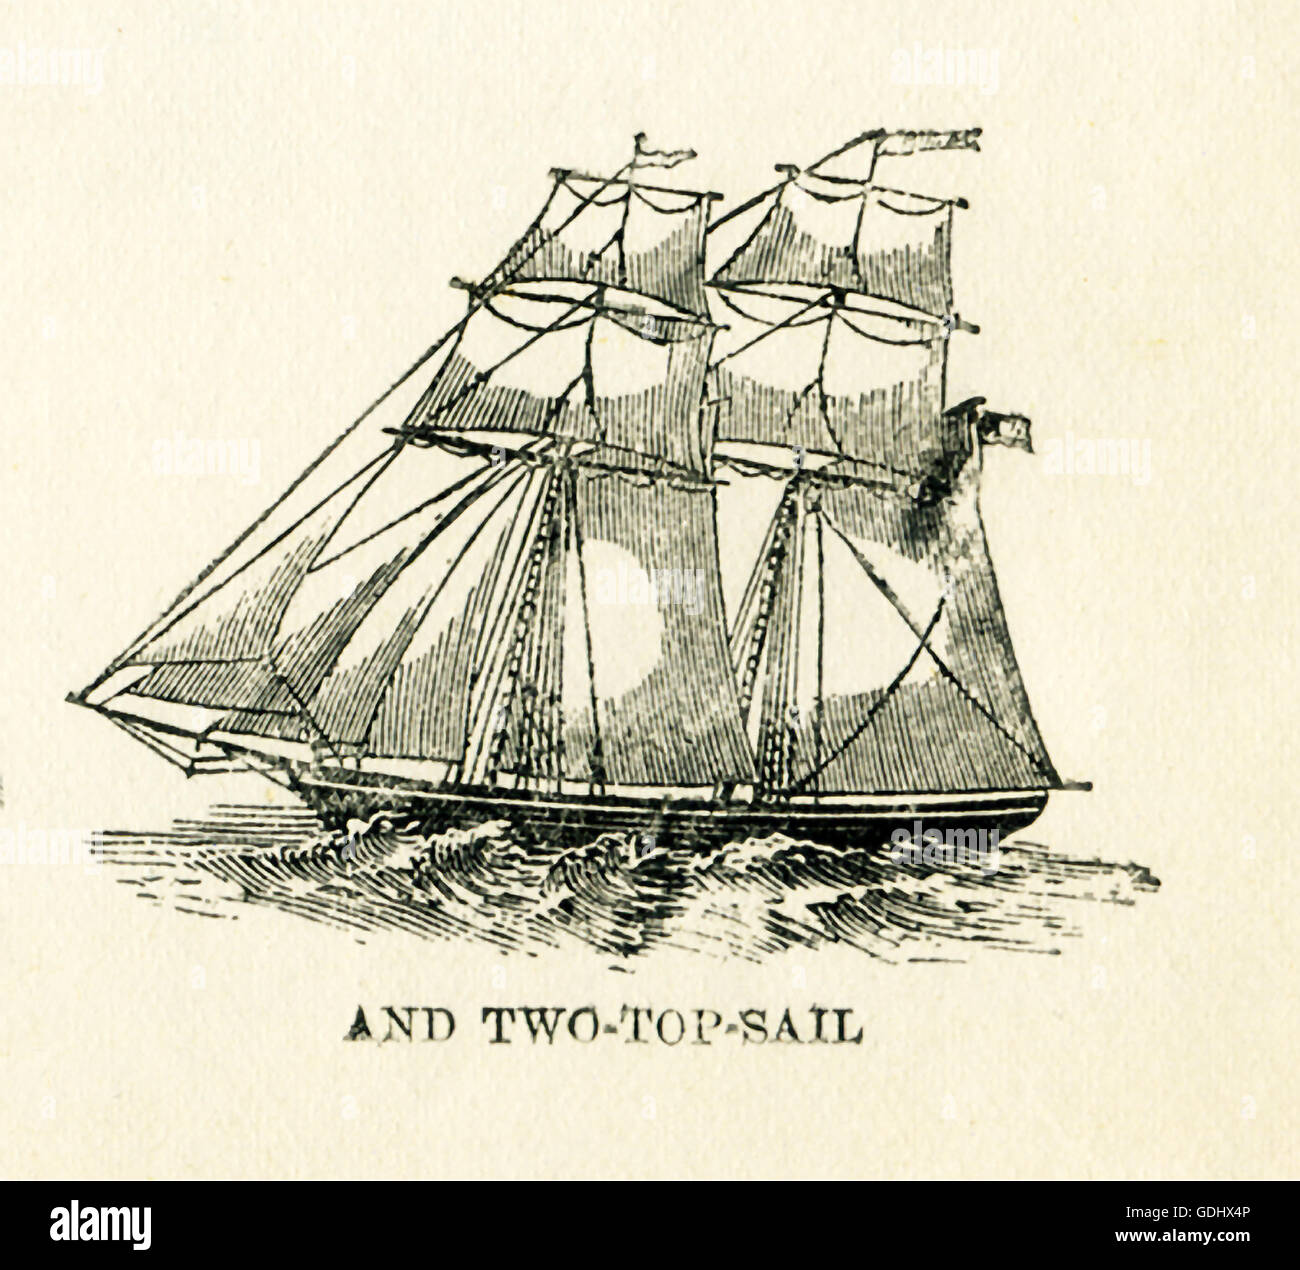 The vessel pictured in this 19th-century drawing is a schooner, specifically a two- top-sail. - Stock Image